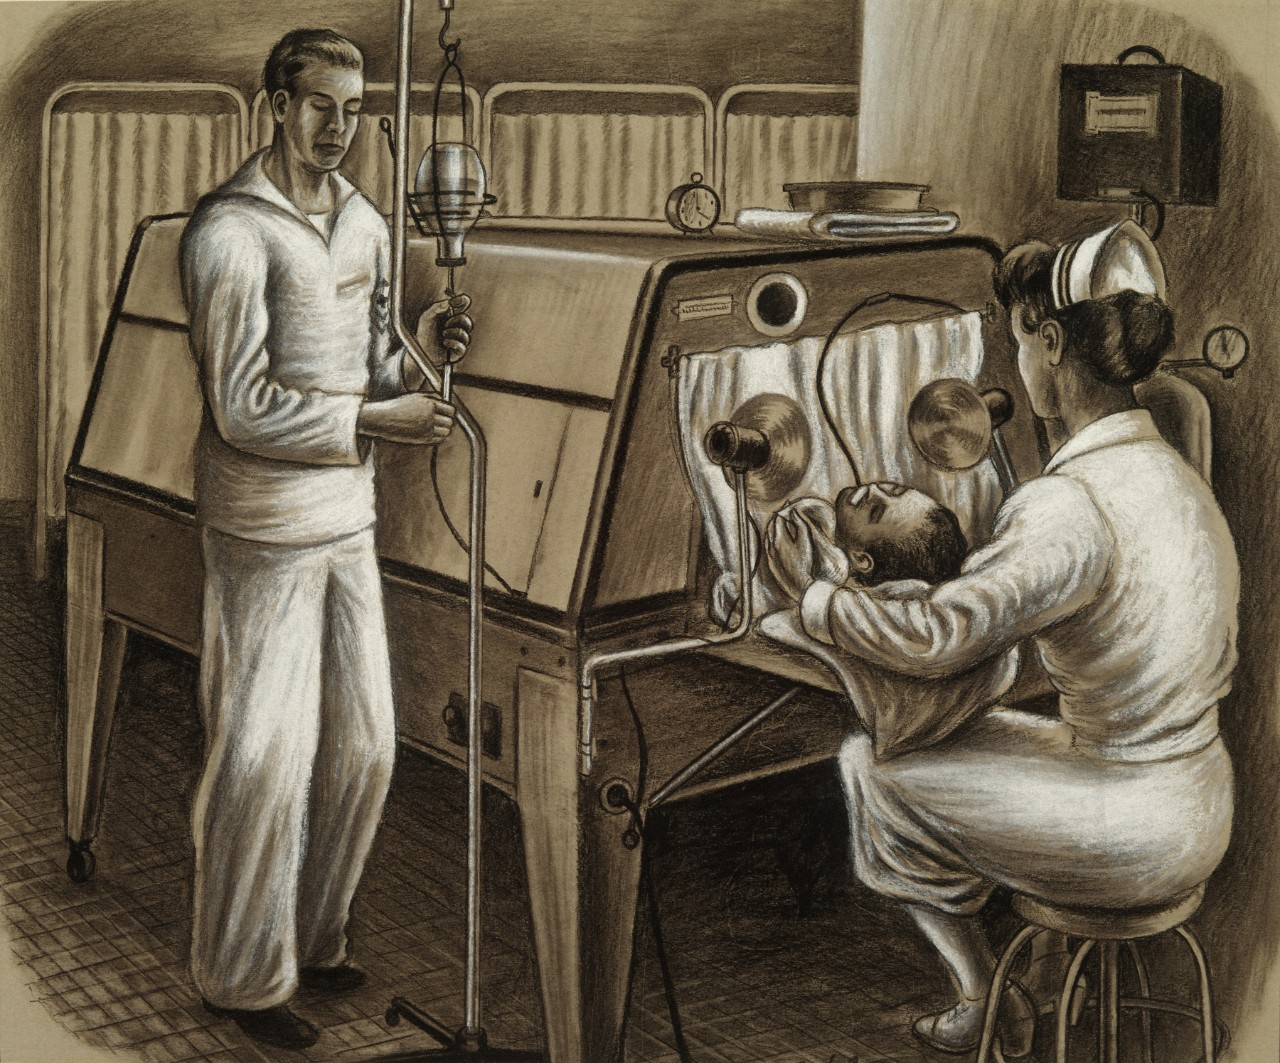 A man is inside a fever therapy cabinet except for his head. He is being monitored by a nurse and a corpsman